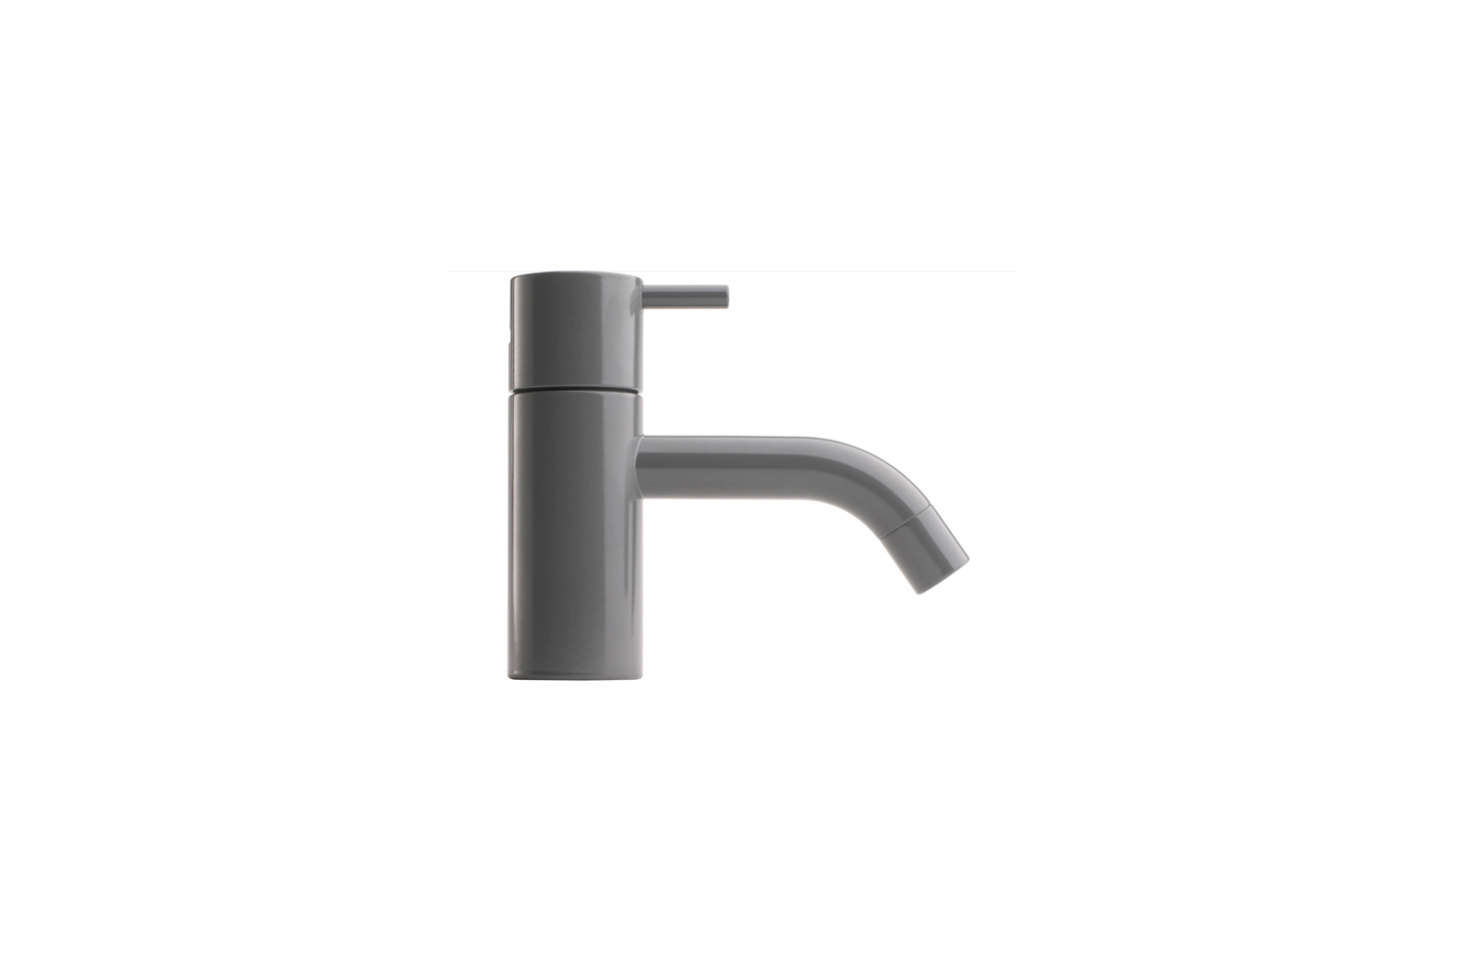 Another model from Arne Jacobsen, the Vola Bathroom Faucet HVsrc=